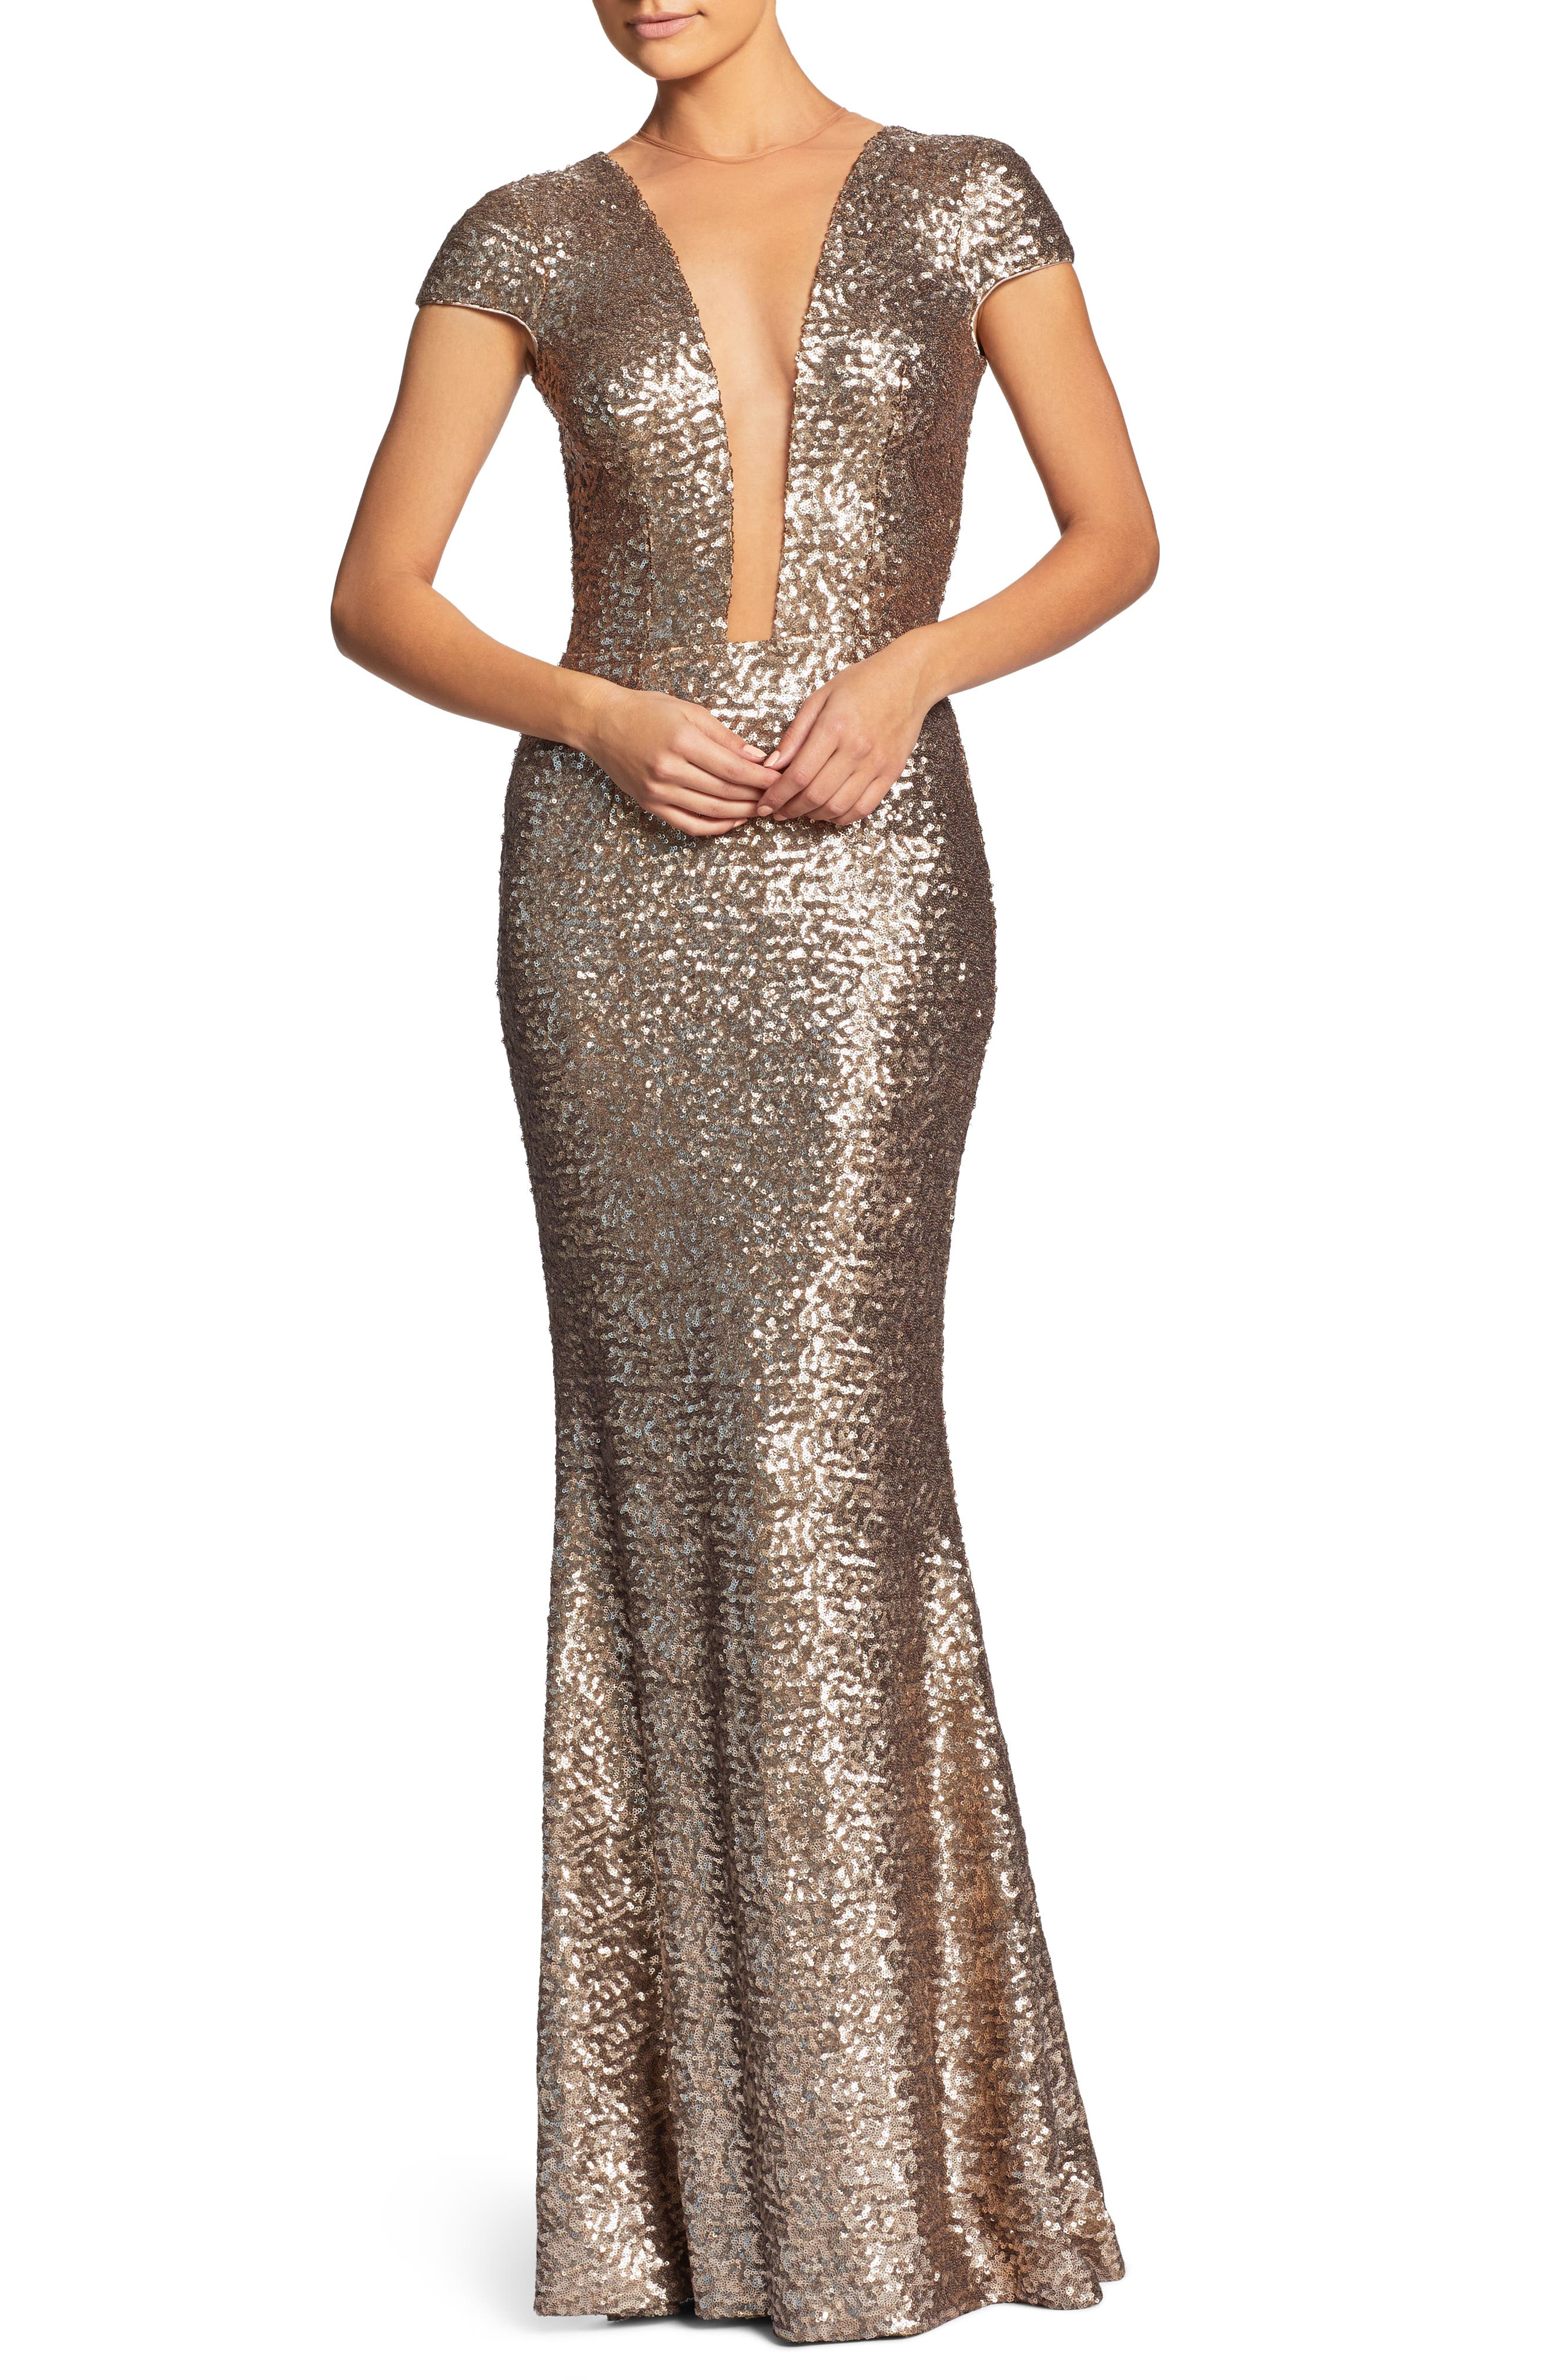 Where to Find Prom Dresses